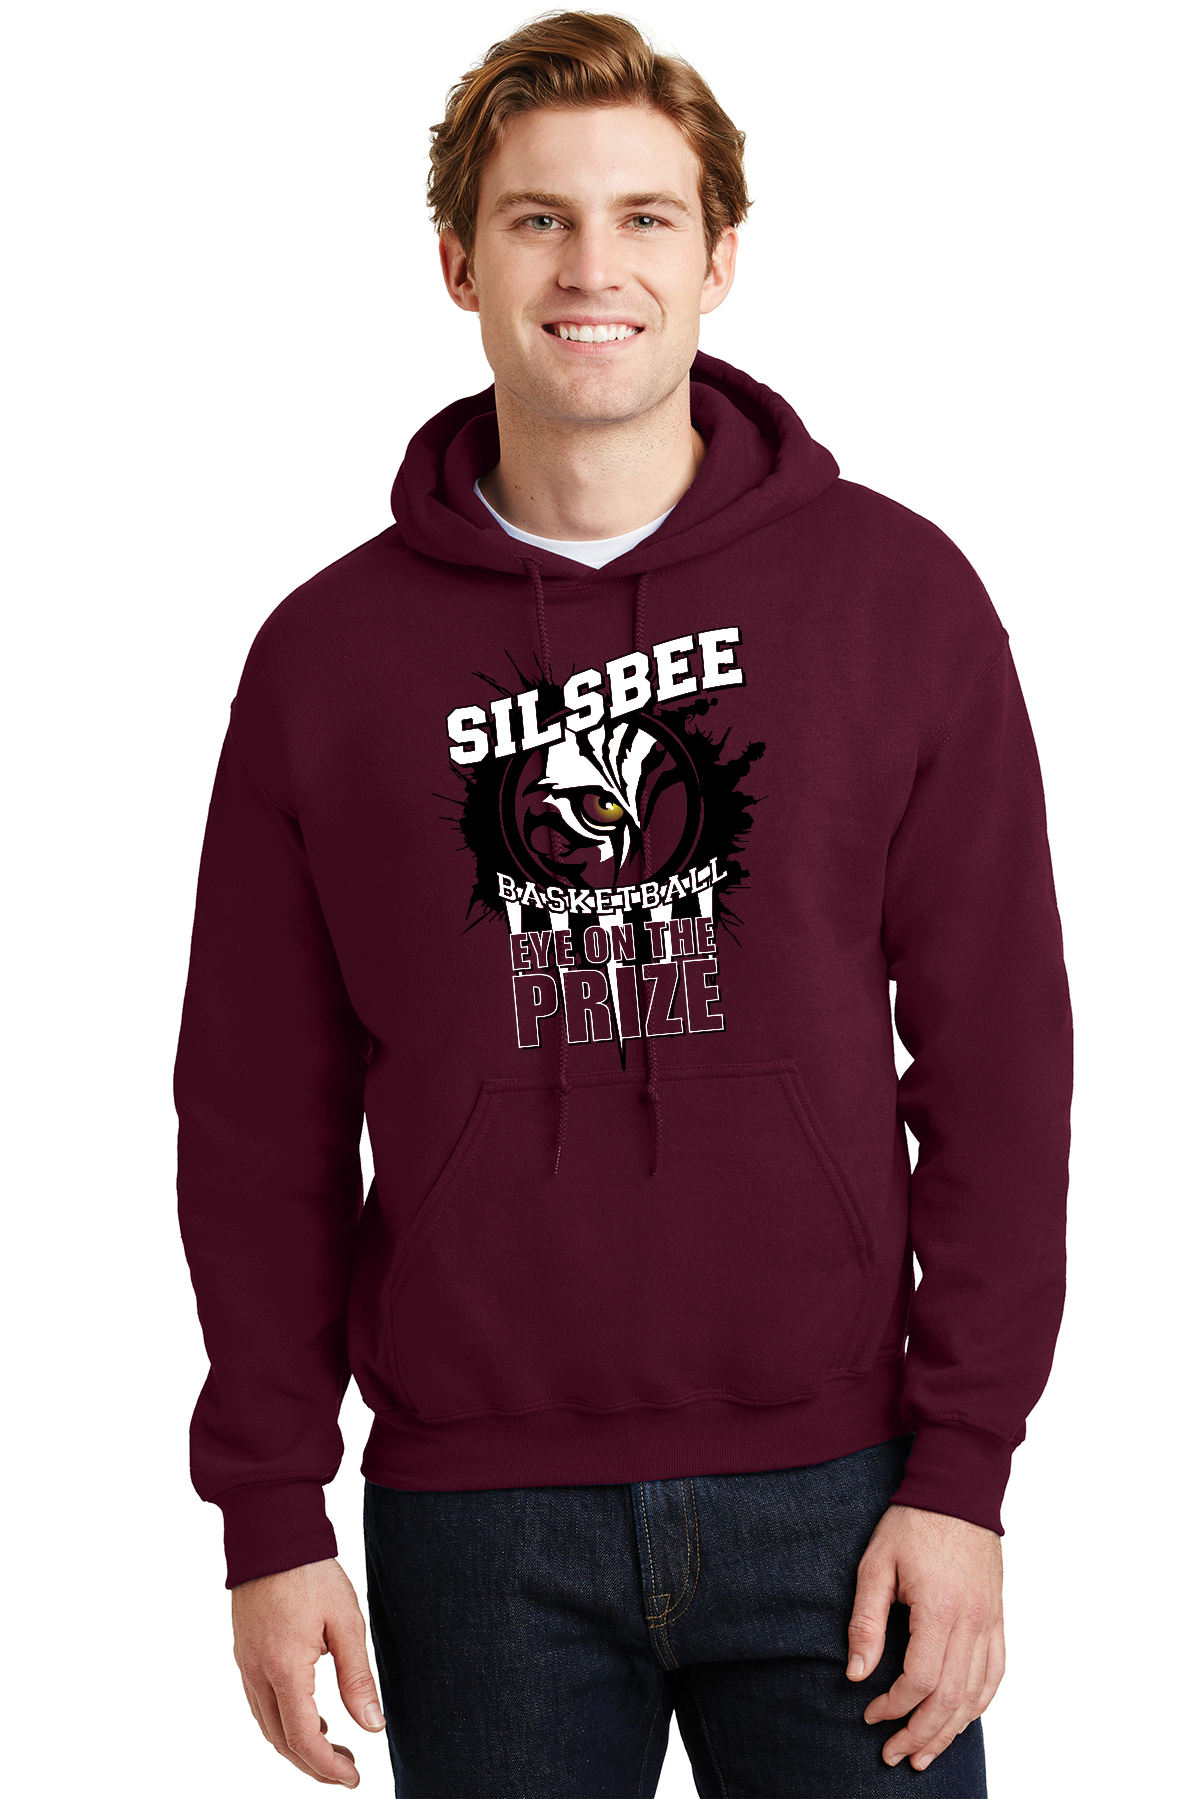 2019 Silsbee High School Basketball Youth T-Shirt/Hoodie